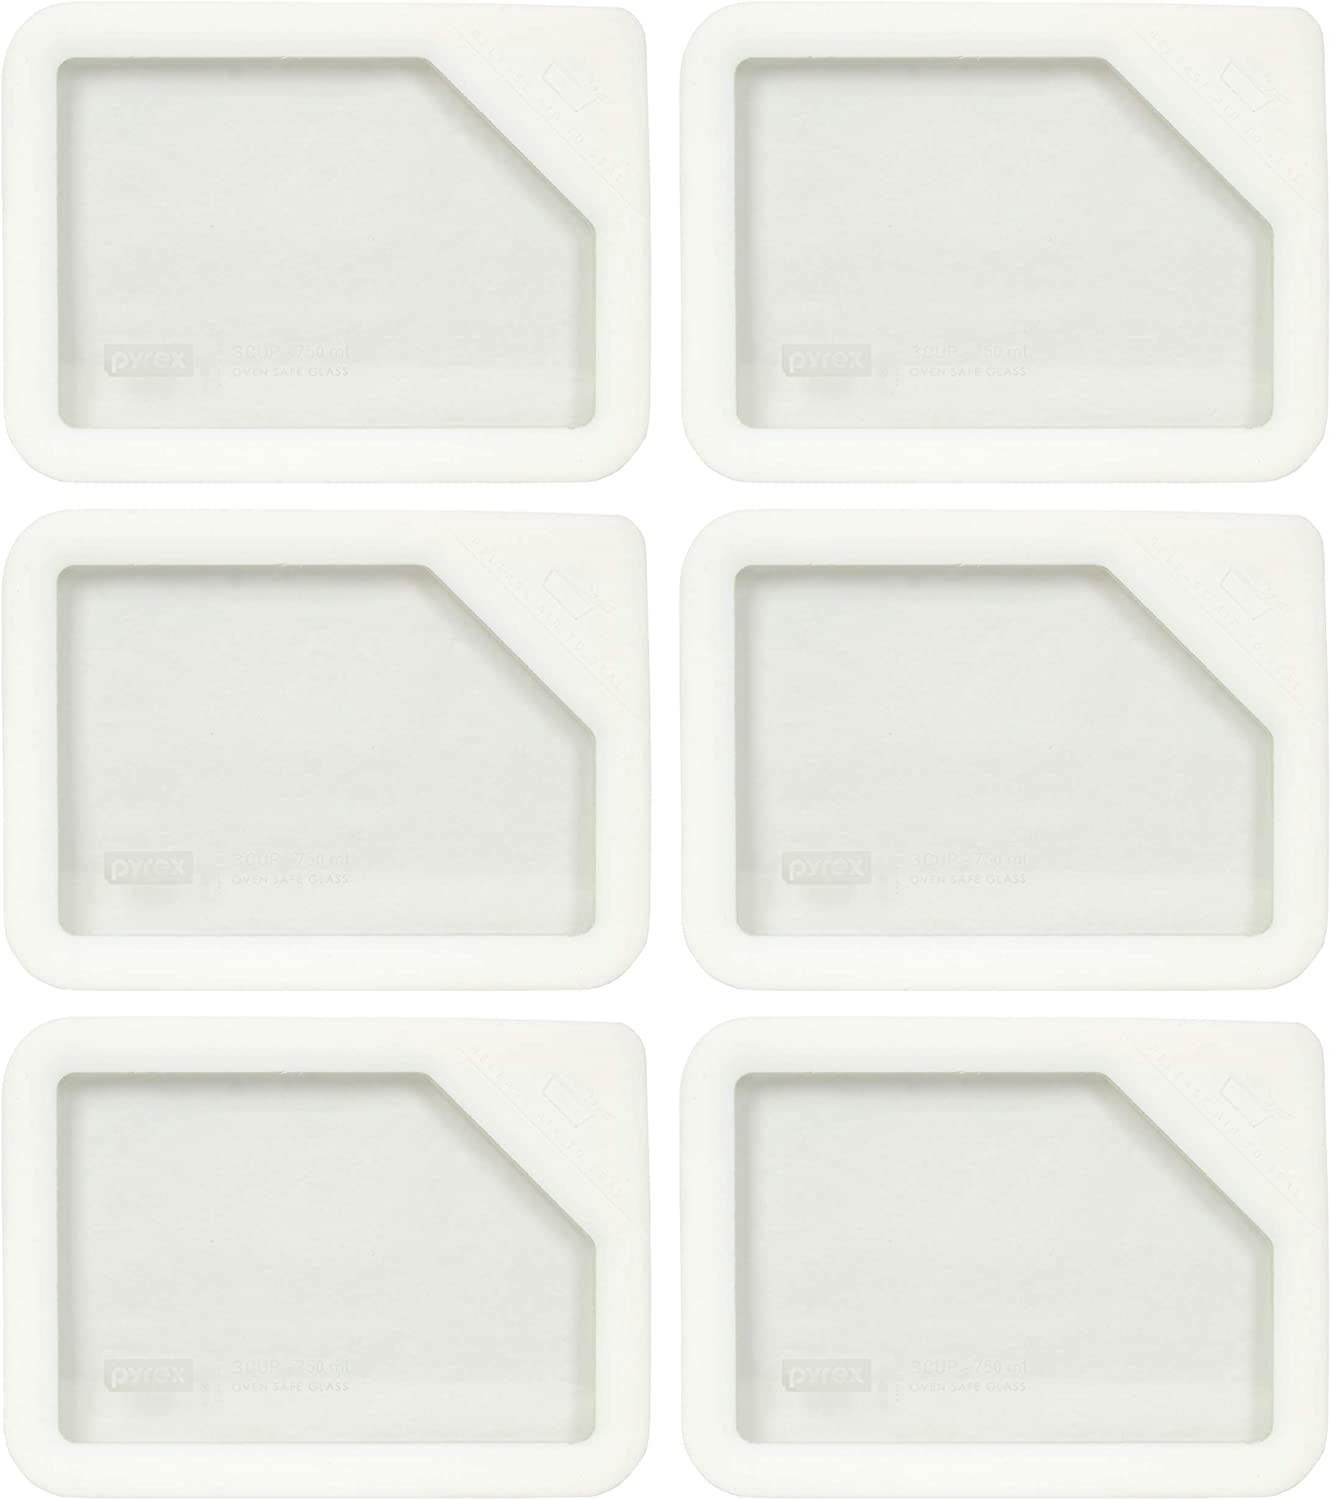 Pyrex Ultimate OV-7210 White Rectangle Glass Storage Lids - 6 Pack (Lids Only - Dishes NOT Included)